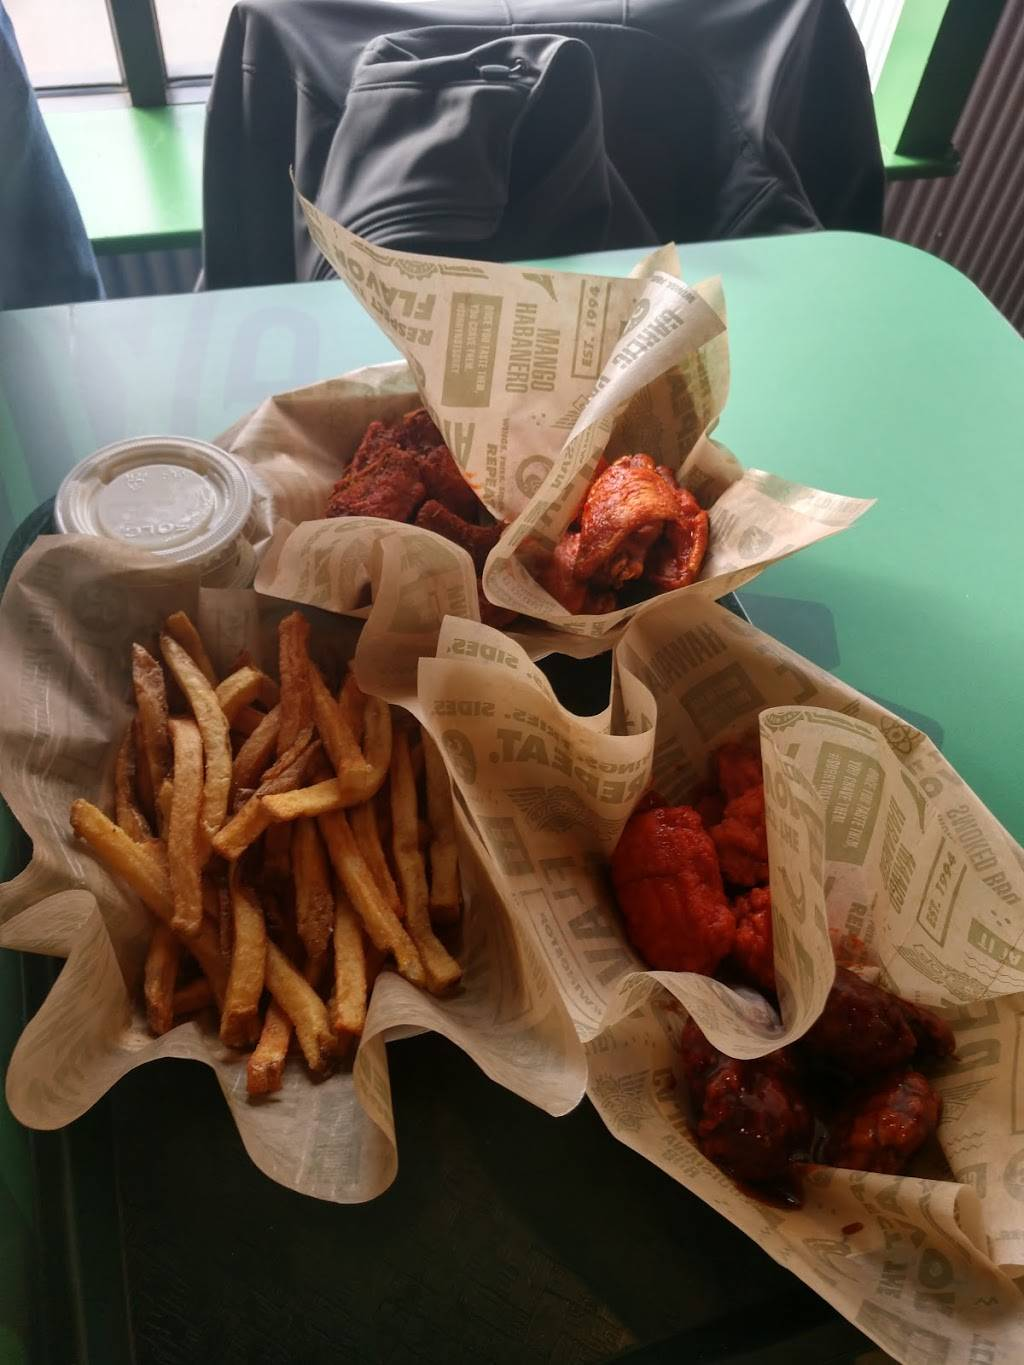 Wingstop | restaurant | 7317 Northcliff Ave, Brooklyn, OH 44144, USA | 2162821700 OR +1 216-282-1700